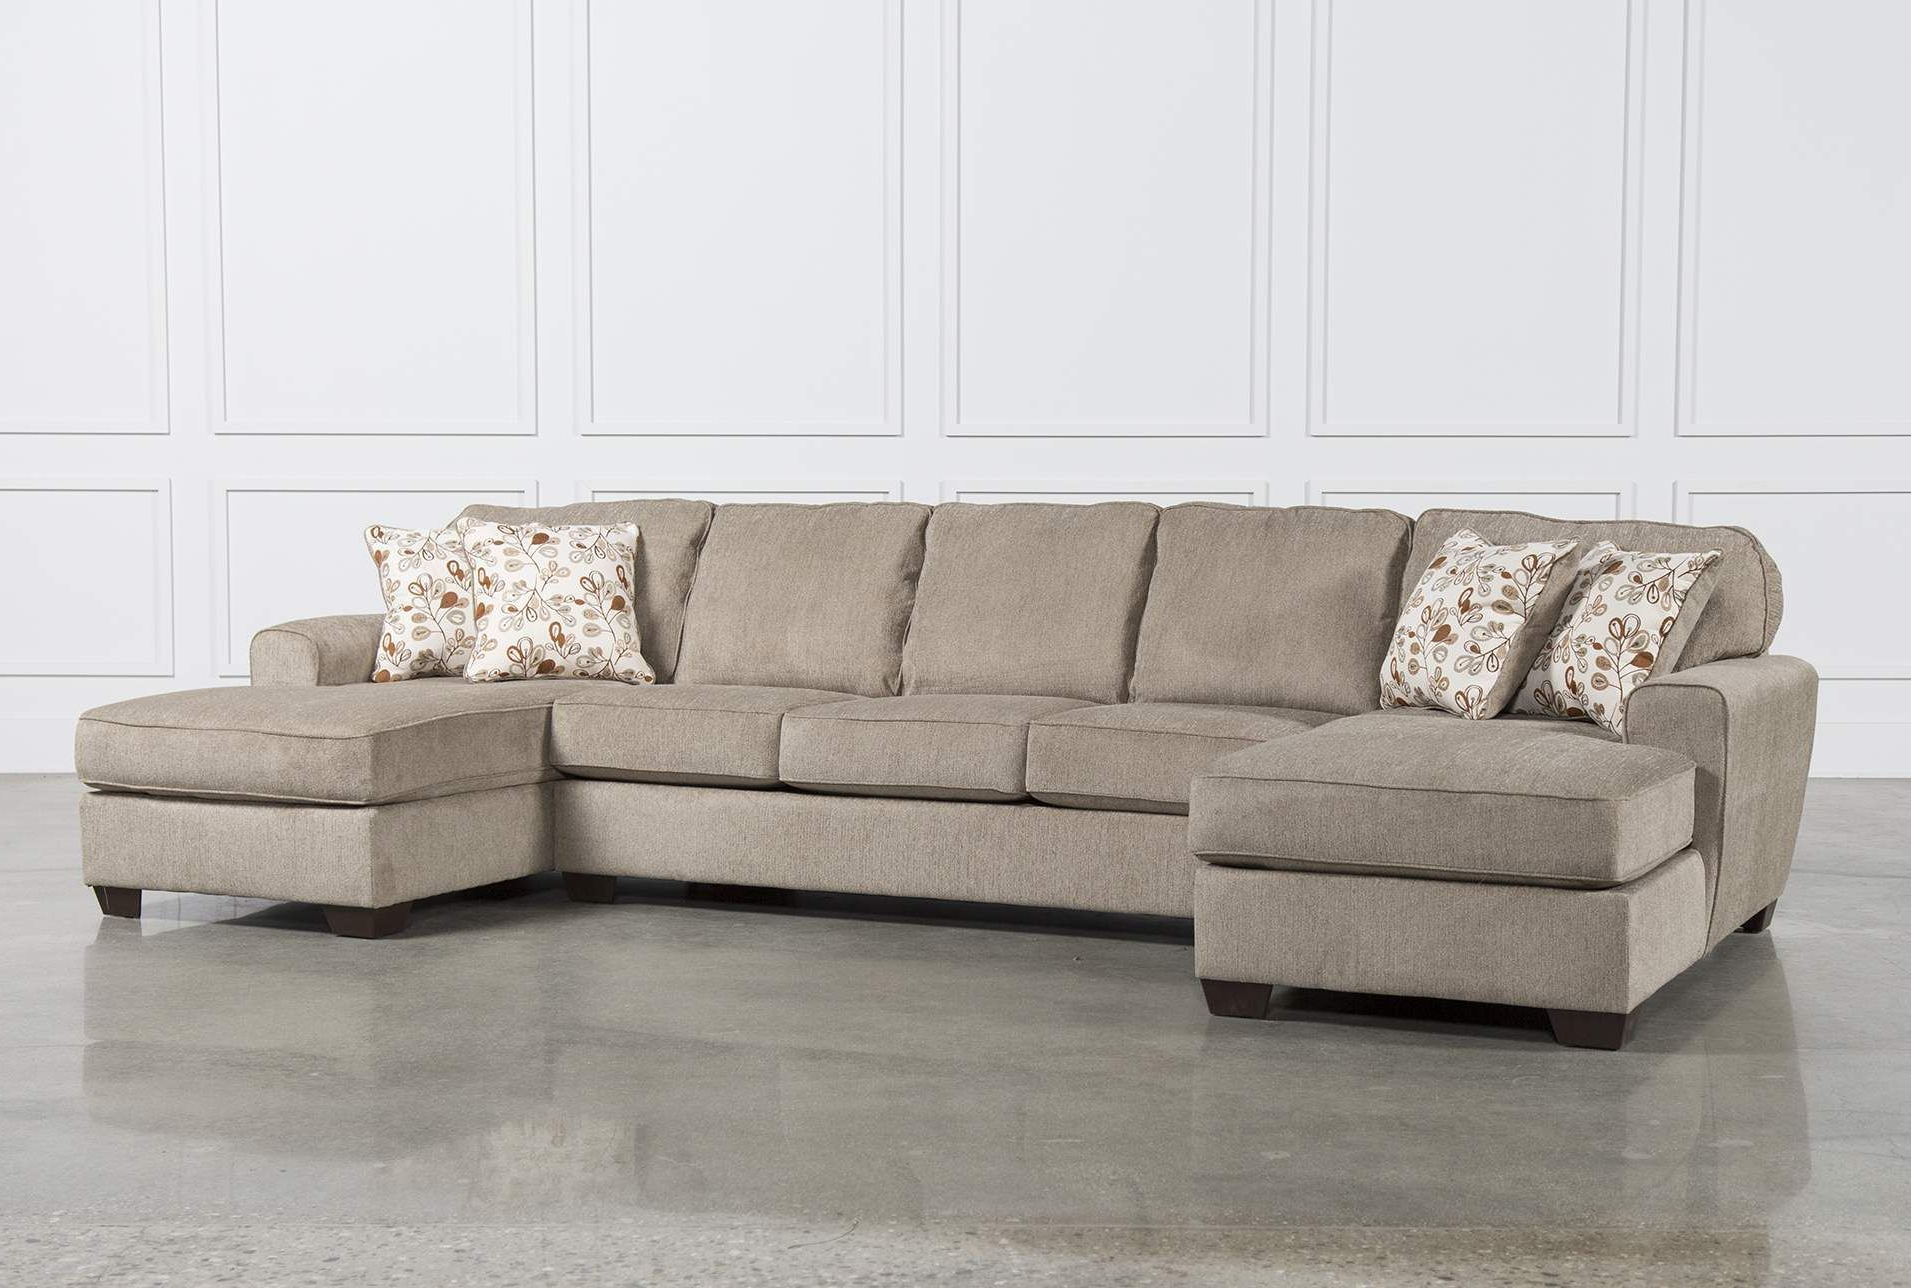 Newest Ashley Patola Park 3 Piece Sectional W/2 Corner Chaises, Brown Inside Malbry Point 3 Piece Sectionals With Laf Chaise (View 19 of 20)